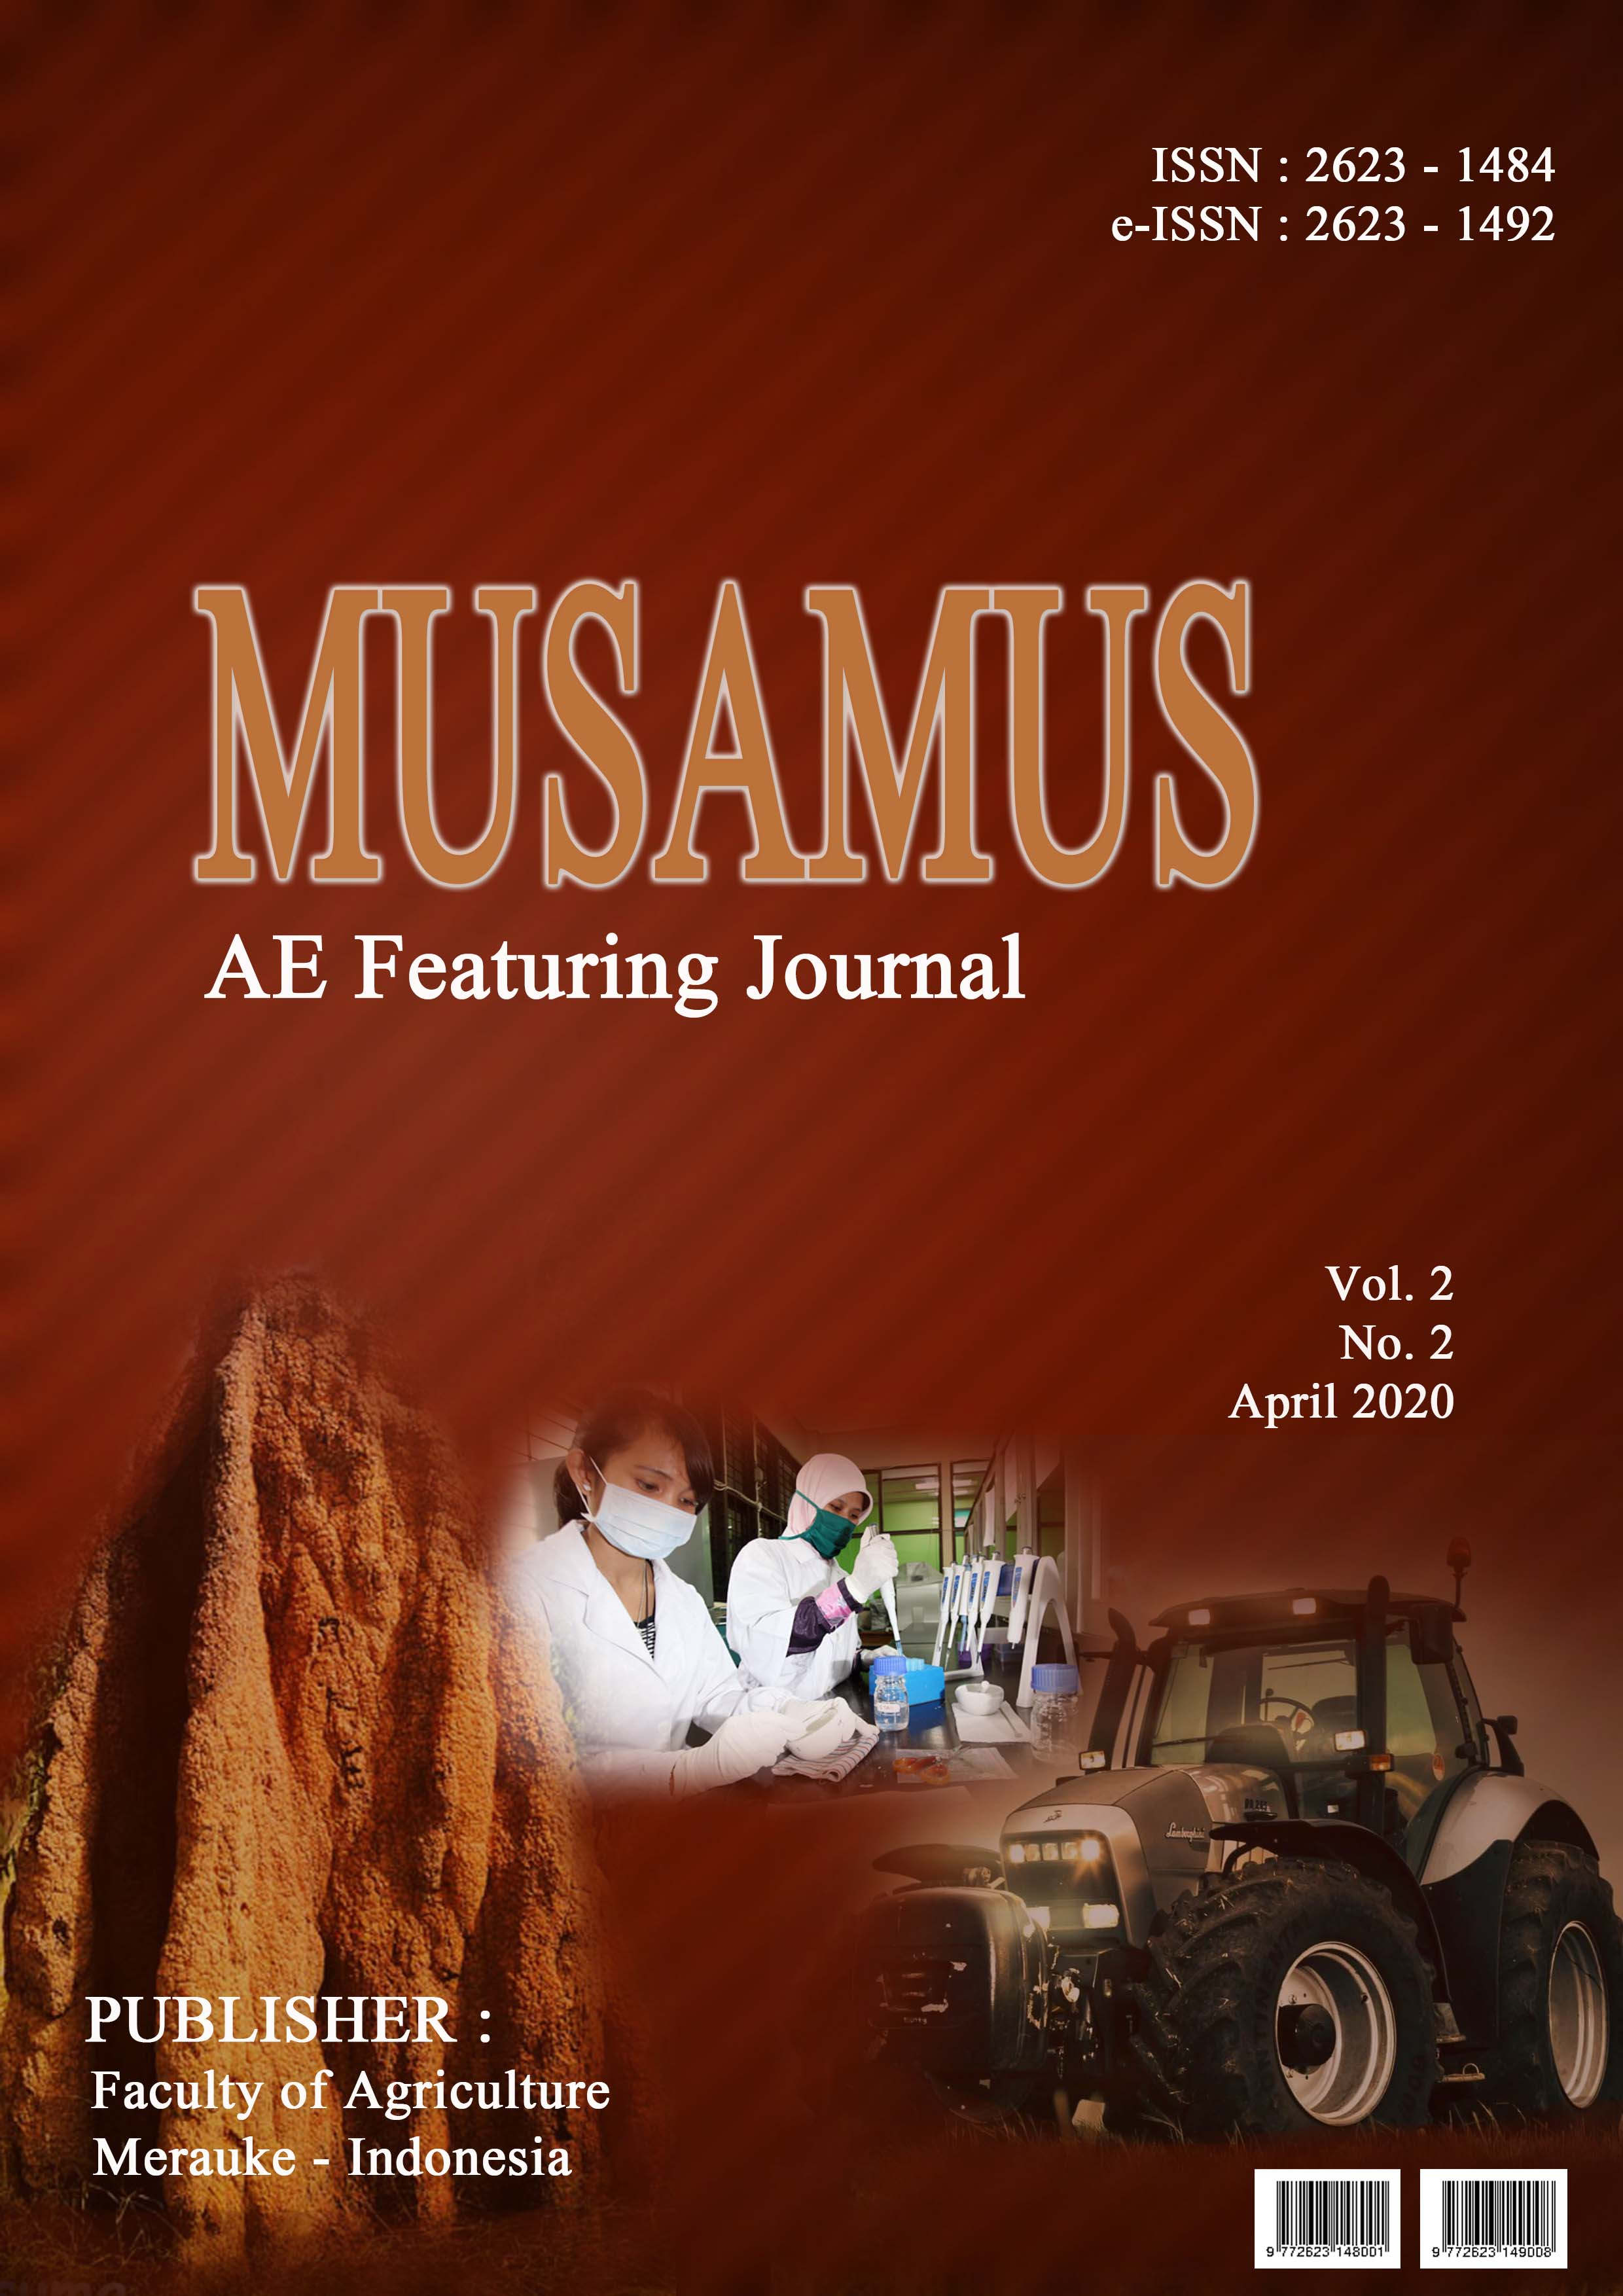 Musamus agriculture engineering featuring journal.